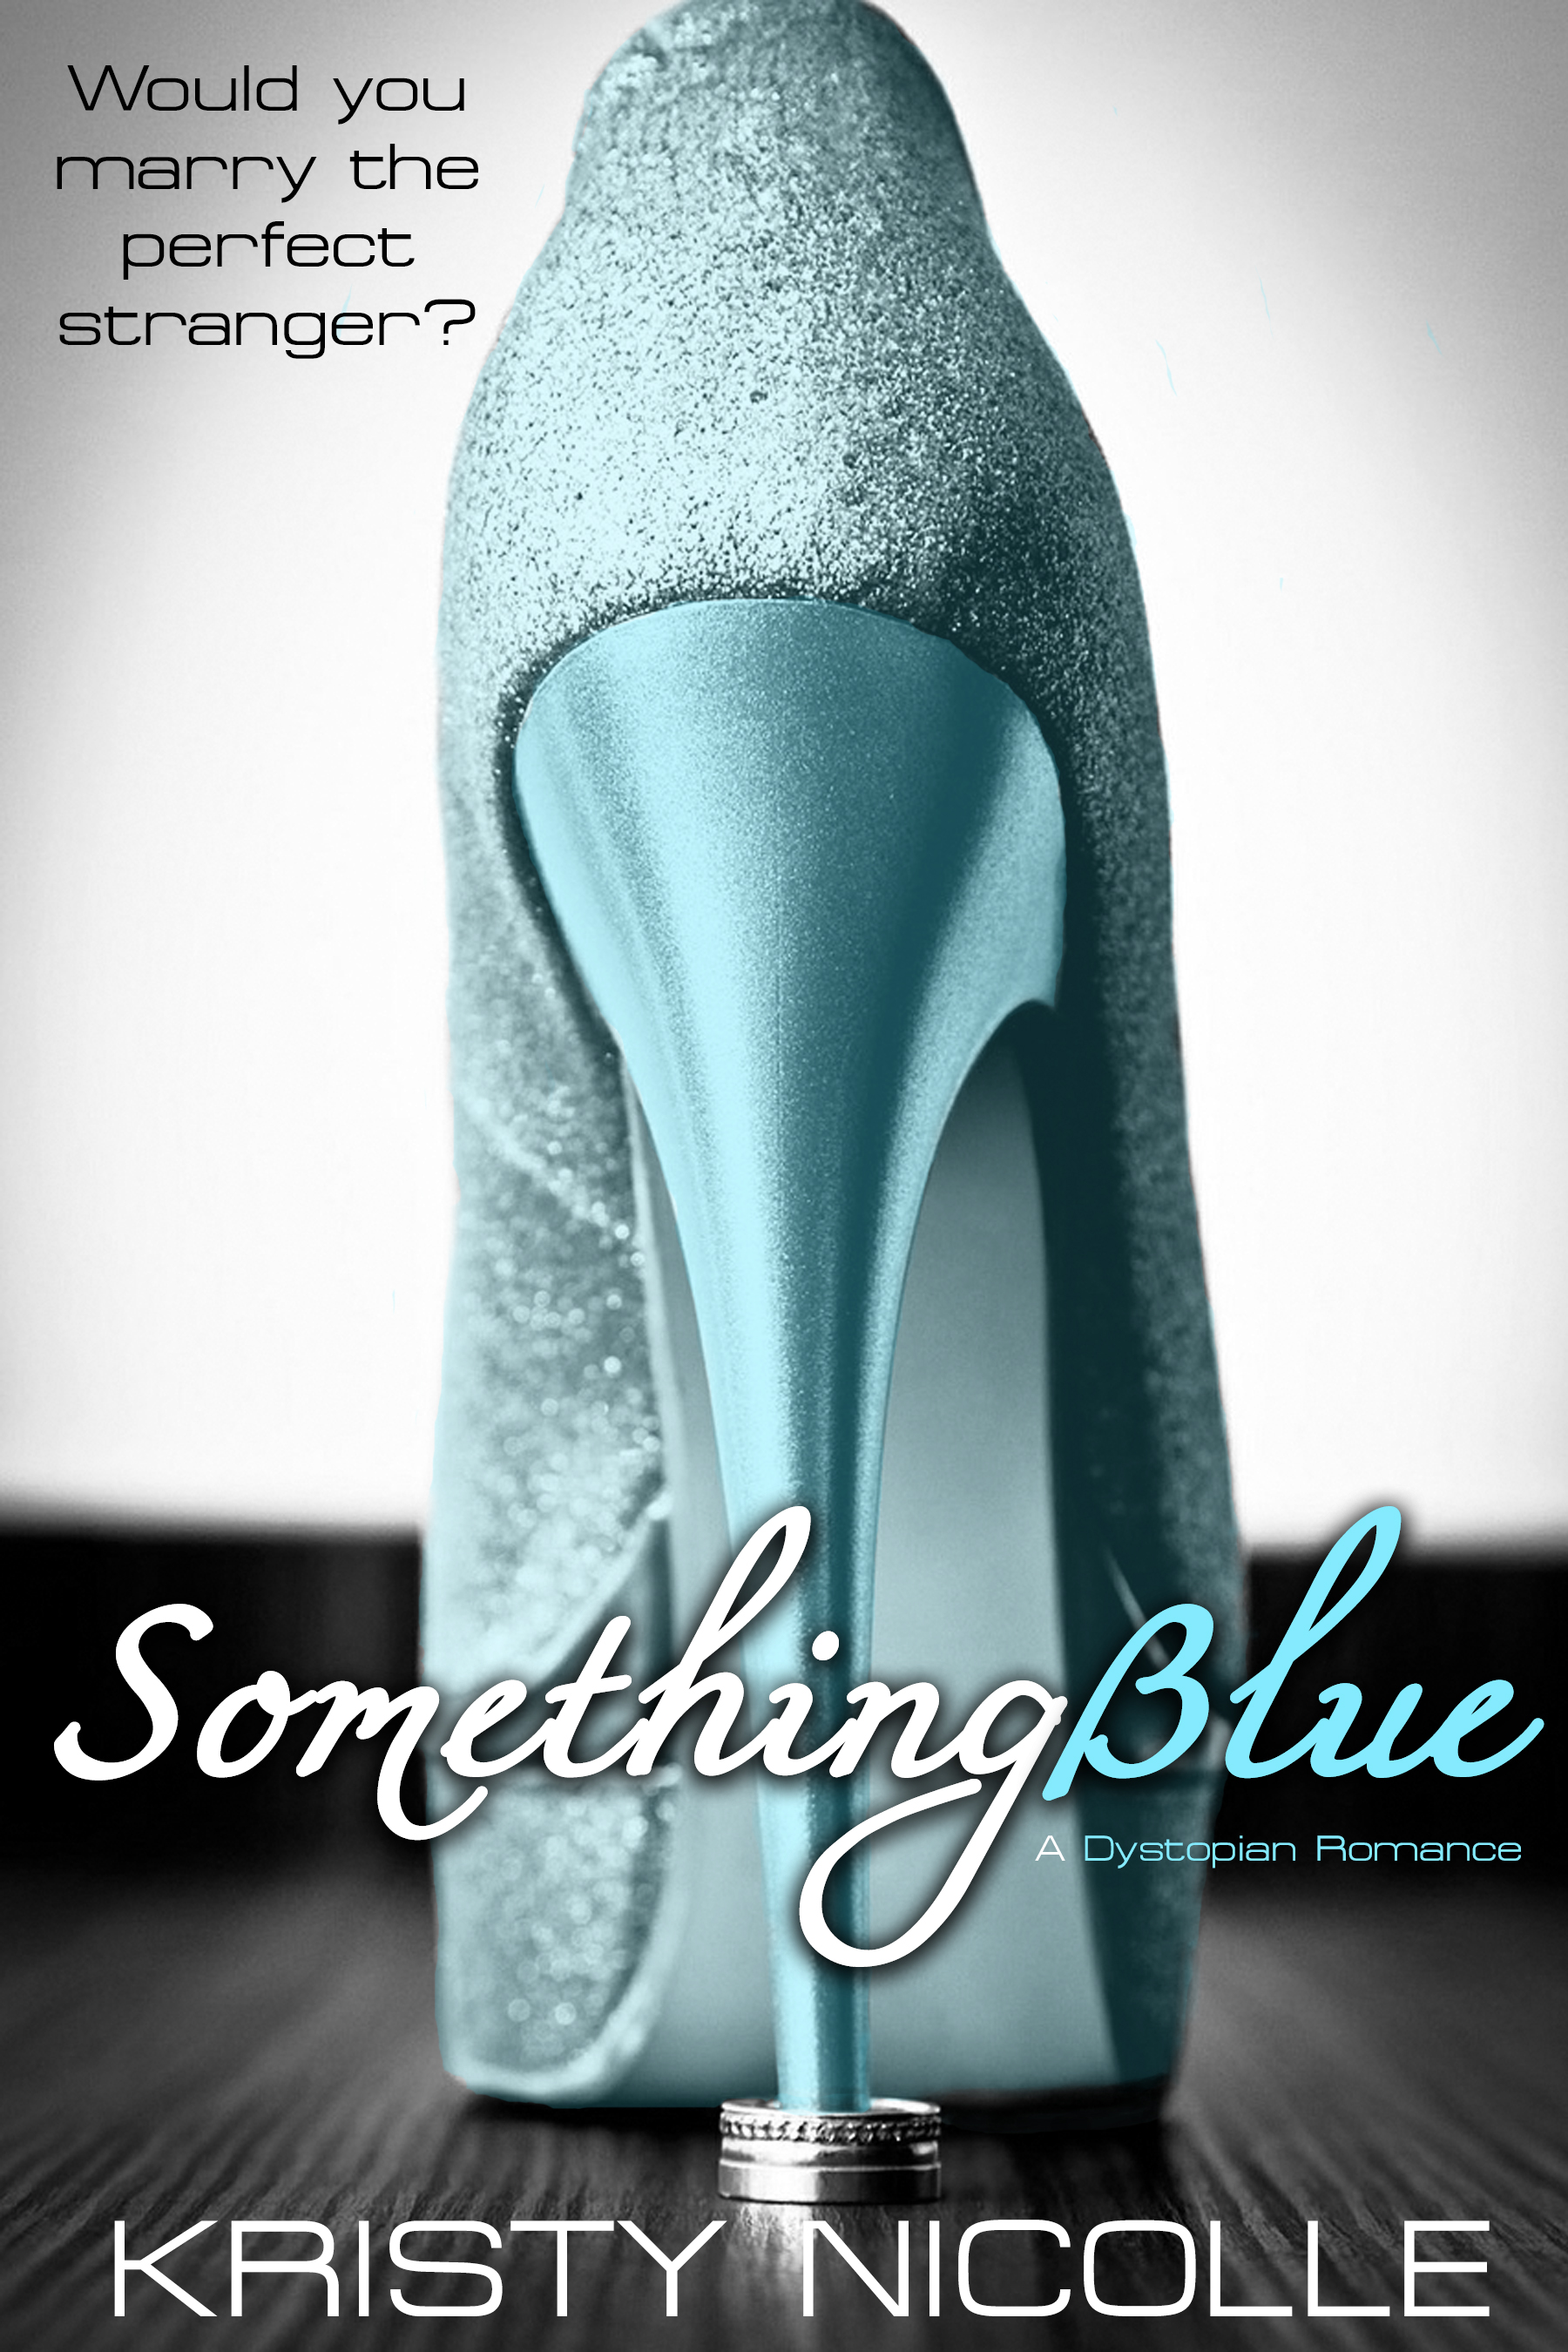 Something Blue- A Dystopian Romance - SYNOPSISIn the city of Monopolis where happily ever after is just a scientific formula away, Valentine Morland has been waiting nine years for her day to come. Now it's here, and she will marry the man of her dreams, a stranger to her, before being swept off to life of carefree luxury and bliss, courtesy of the Jigsaw Project. However, all is not as Valentine imagined as her new husband is quickly discovered as not the man of her dreams, but one who claims he isn't capable of love at all. Harbouring an intense paranoia for the system, which upholds the very idealist fantasy that Valentine holds so dear, Clark threatens to throw her into a world, not of bliss, but of scary consequence where her every emotion is under scrutiny. Can it be that the scientific formula with a 99% success rate got it all wrong, or is everything in the world of Bliss Inc. more sinister than it seems?